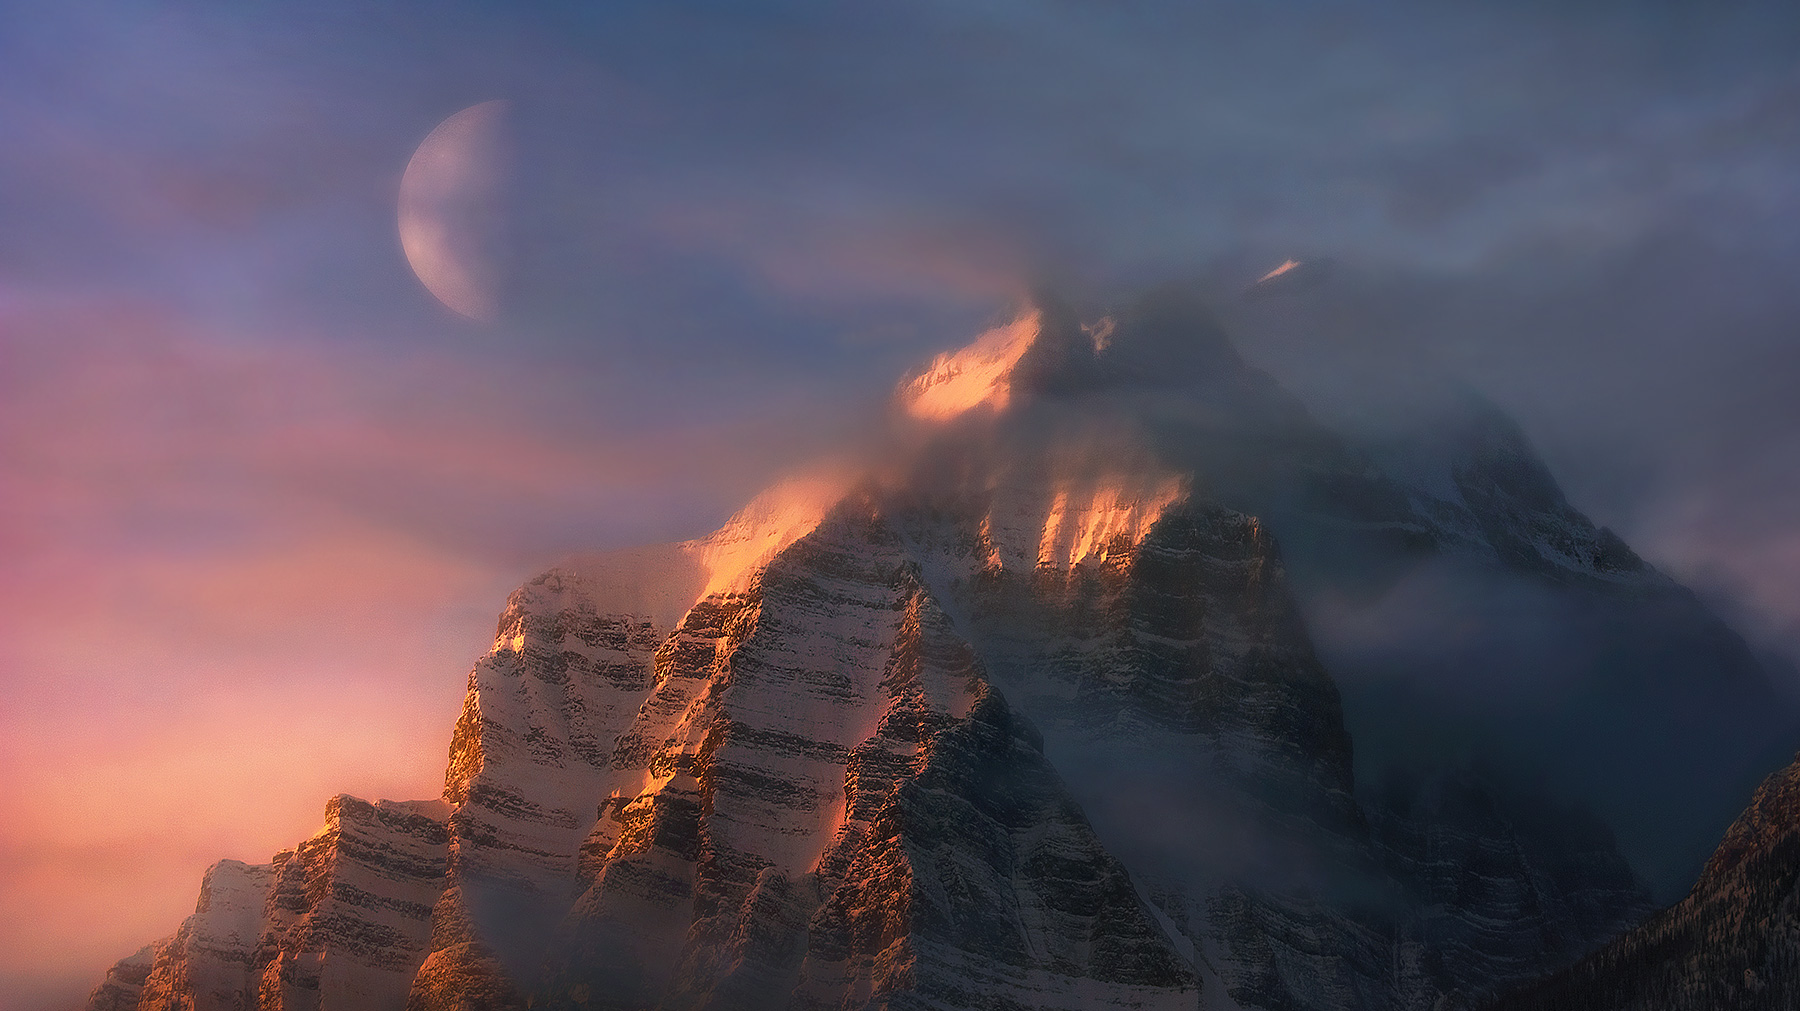 The summit of Mount Temple from a distant viewpoint as the sun rises and the moon sets at 300mm.